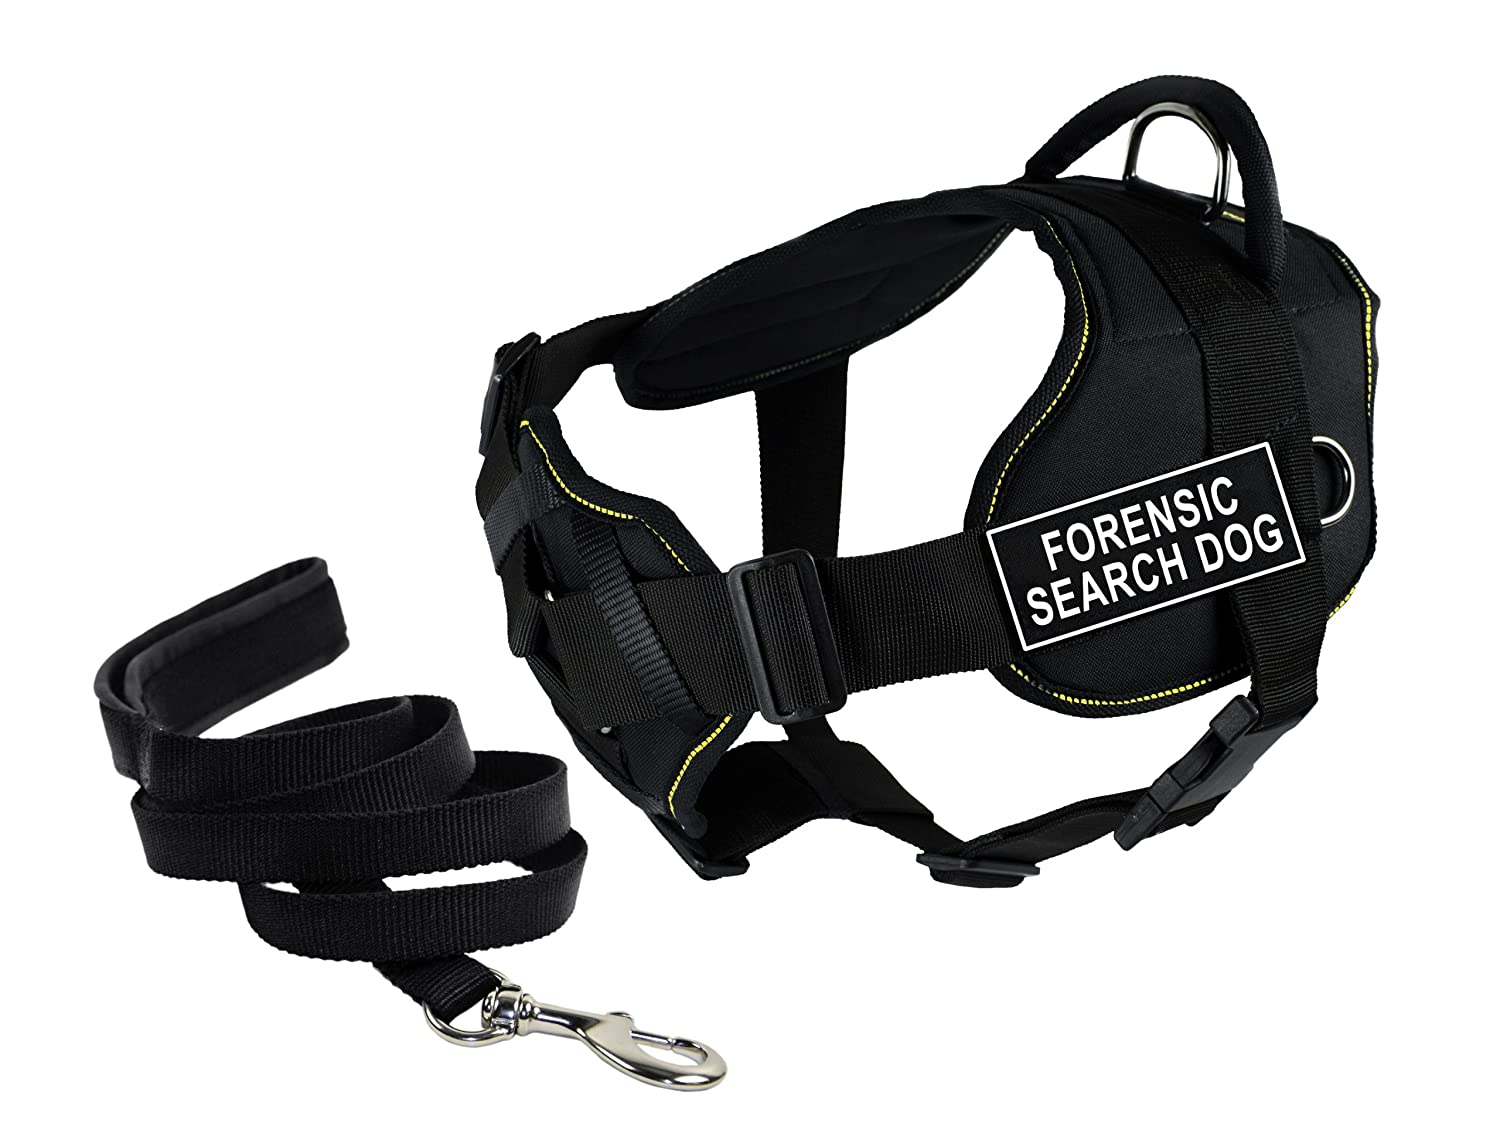 Dean & Tyler's DT Fun Chest Support FORENSIC SEARCH DOG Harness, Large, with 6 ft Padded Puppy Leash.